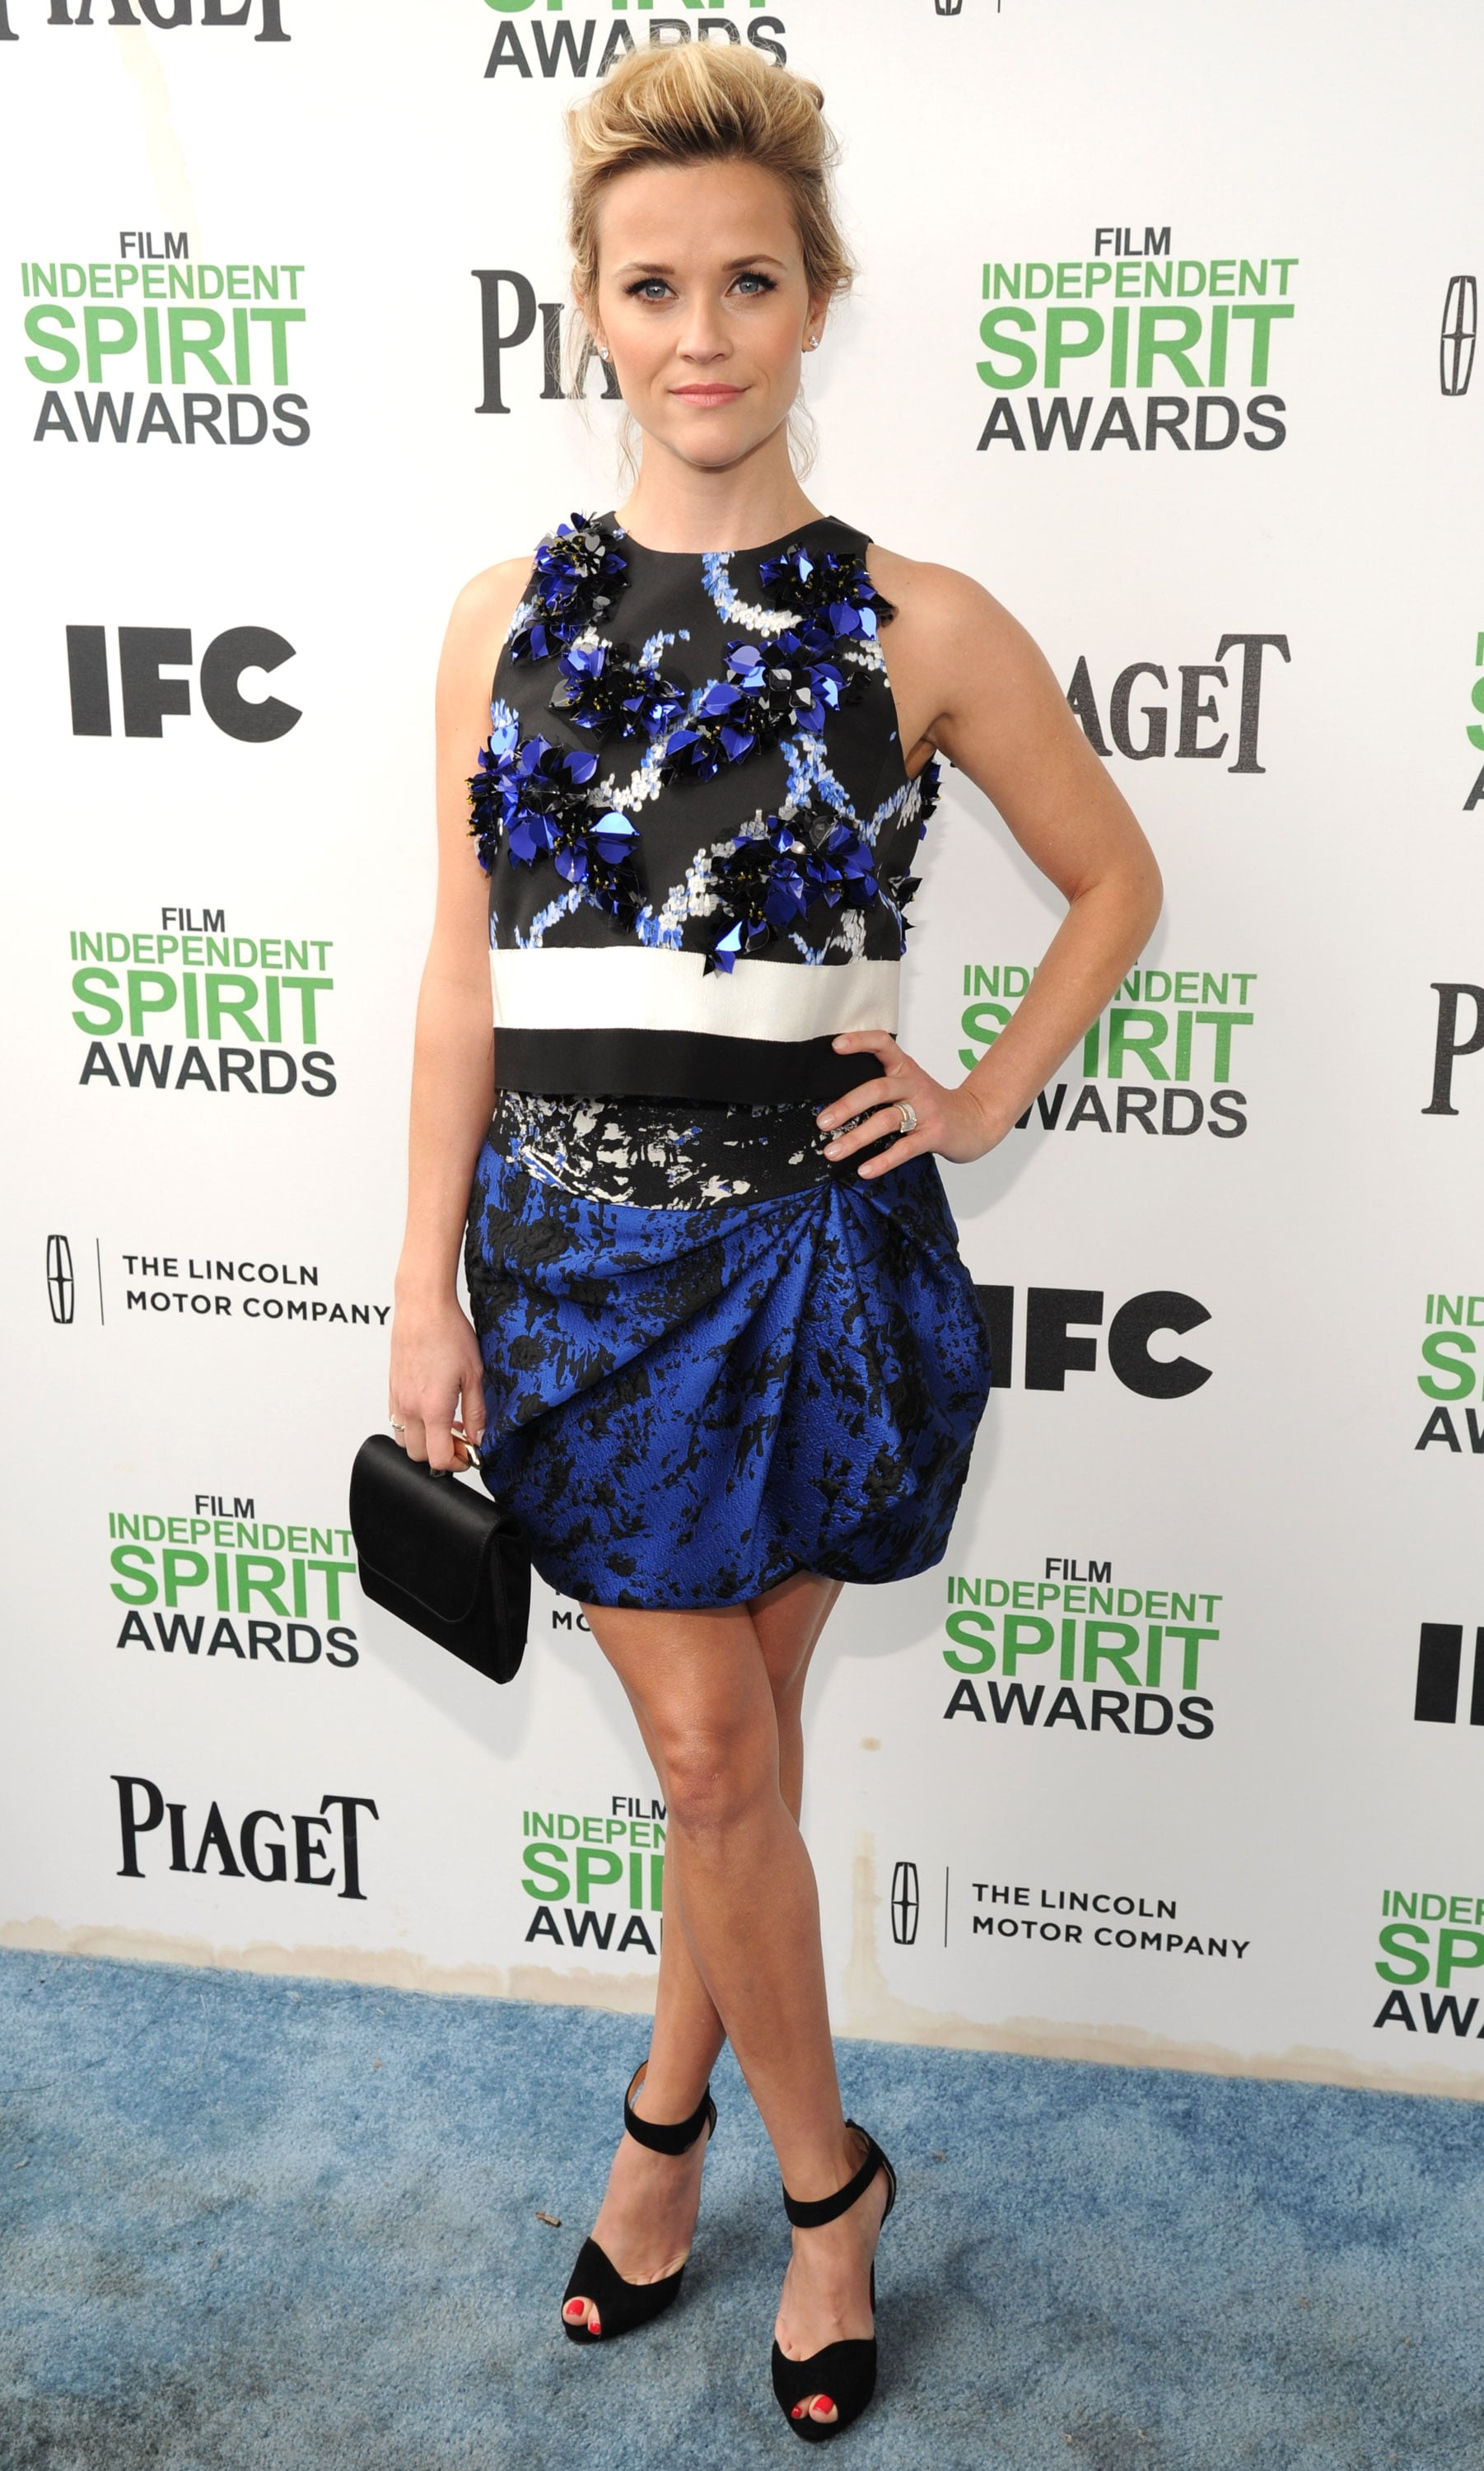 Reese Witherspoon at the 2014 Spirit Awards